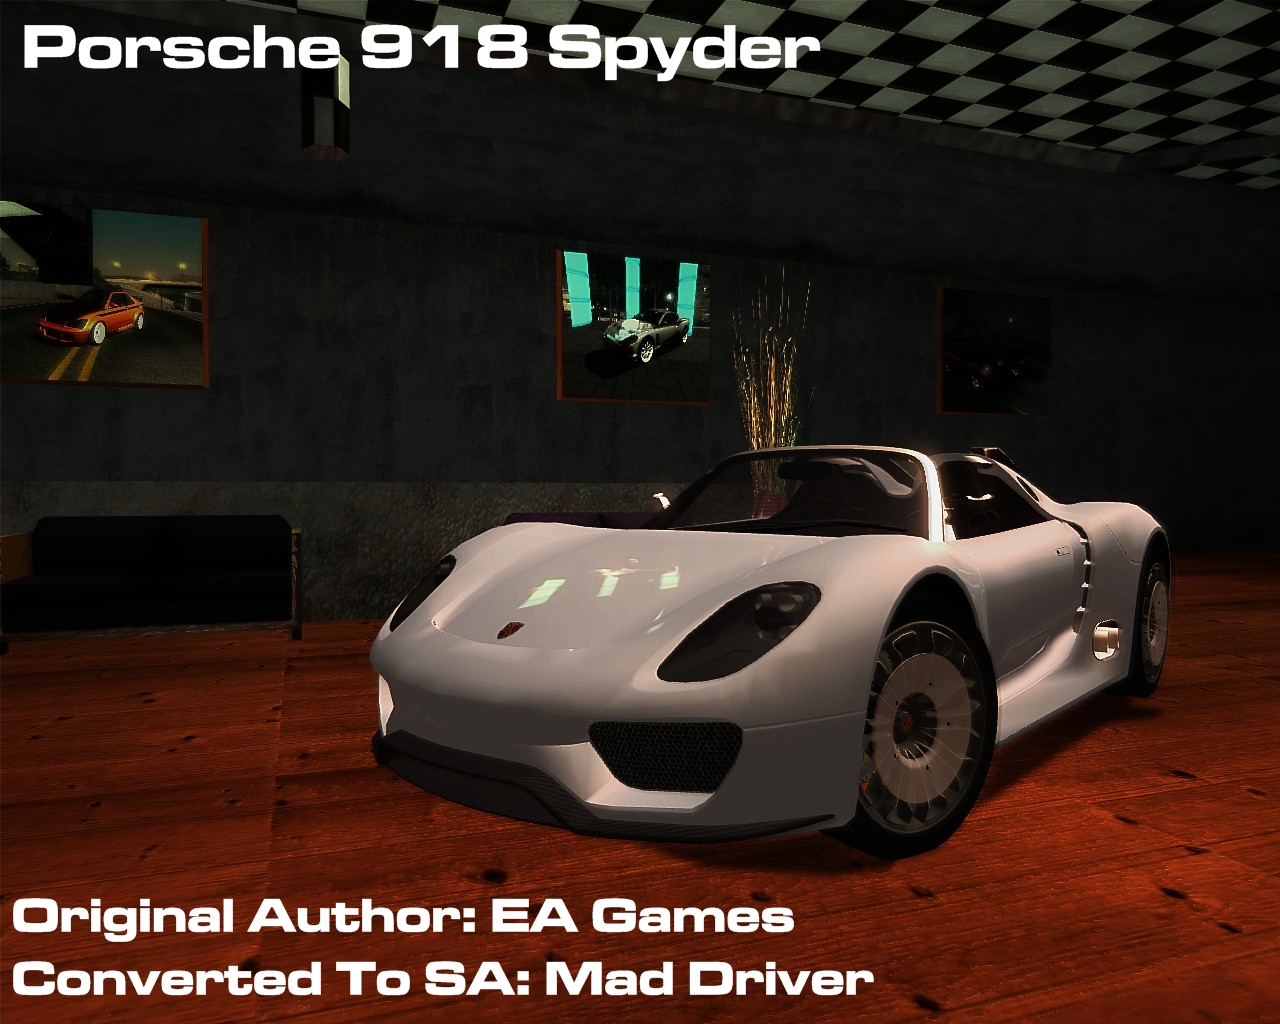 porsche 918 spyder porsche auto gta san andreas gta area download. Black Bedroom Furniture Sets. Home Design Ideas